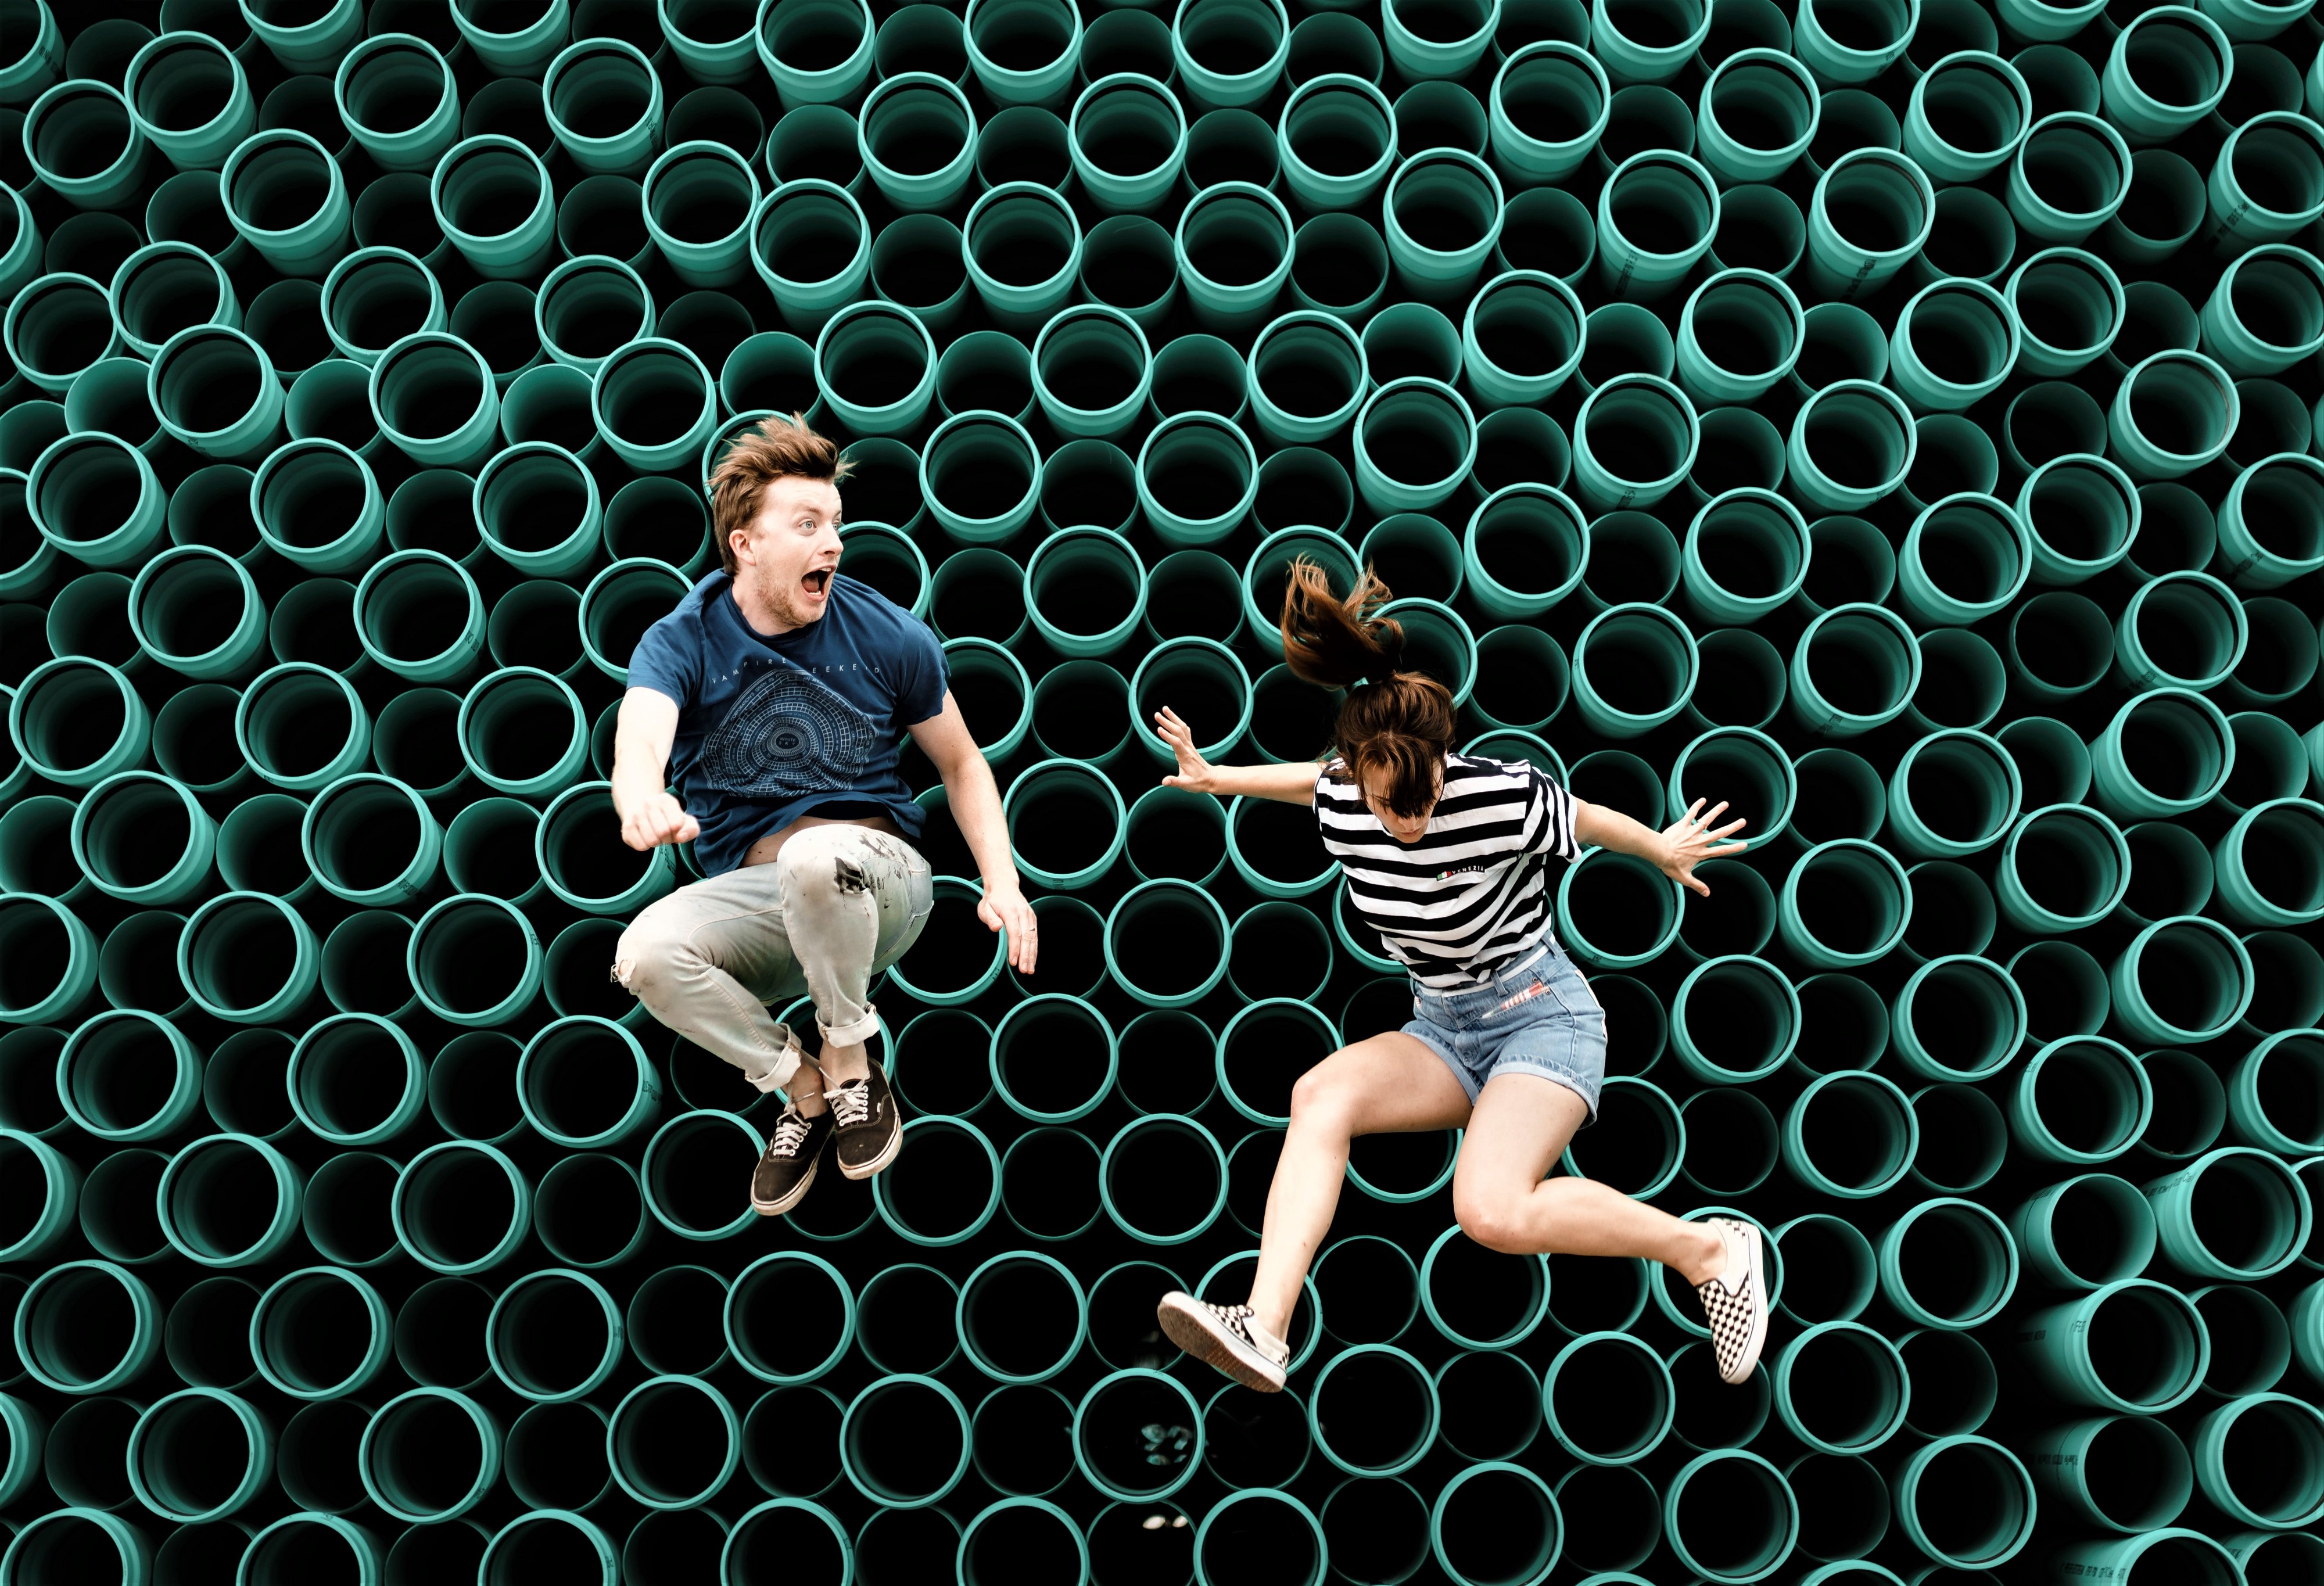 boy and girl jumping in air wall of green round tubes behind them